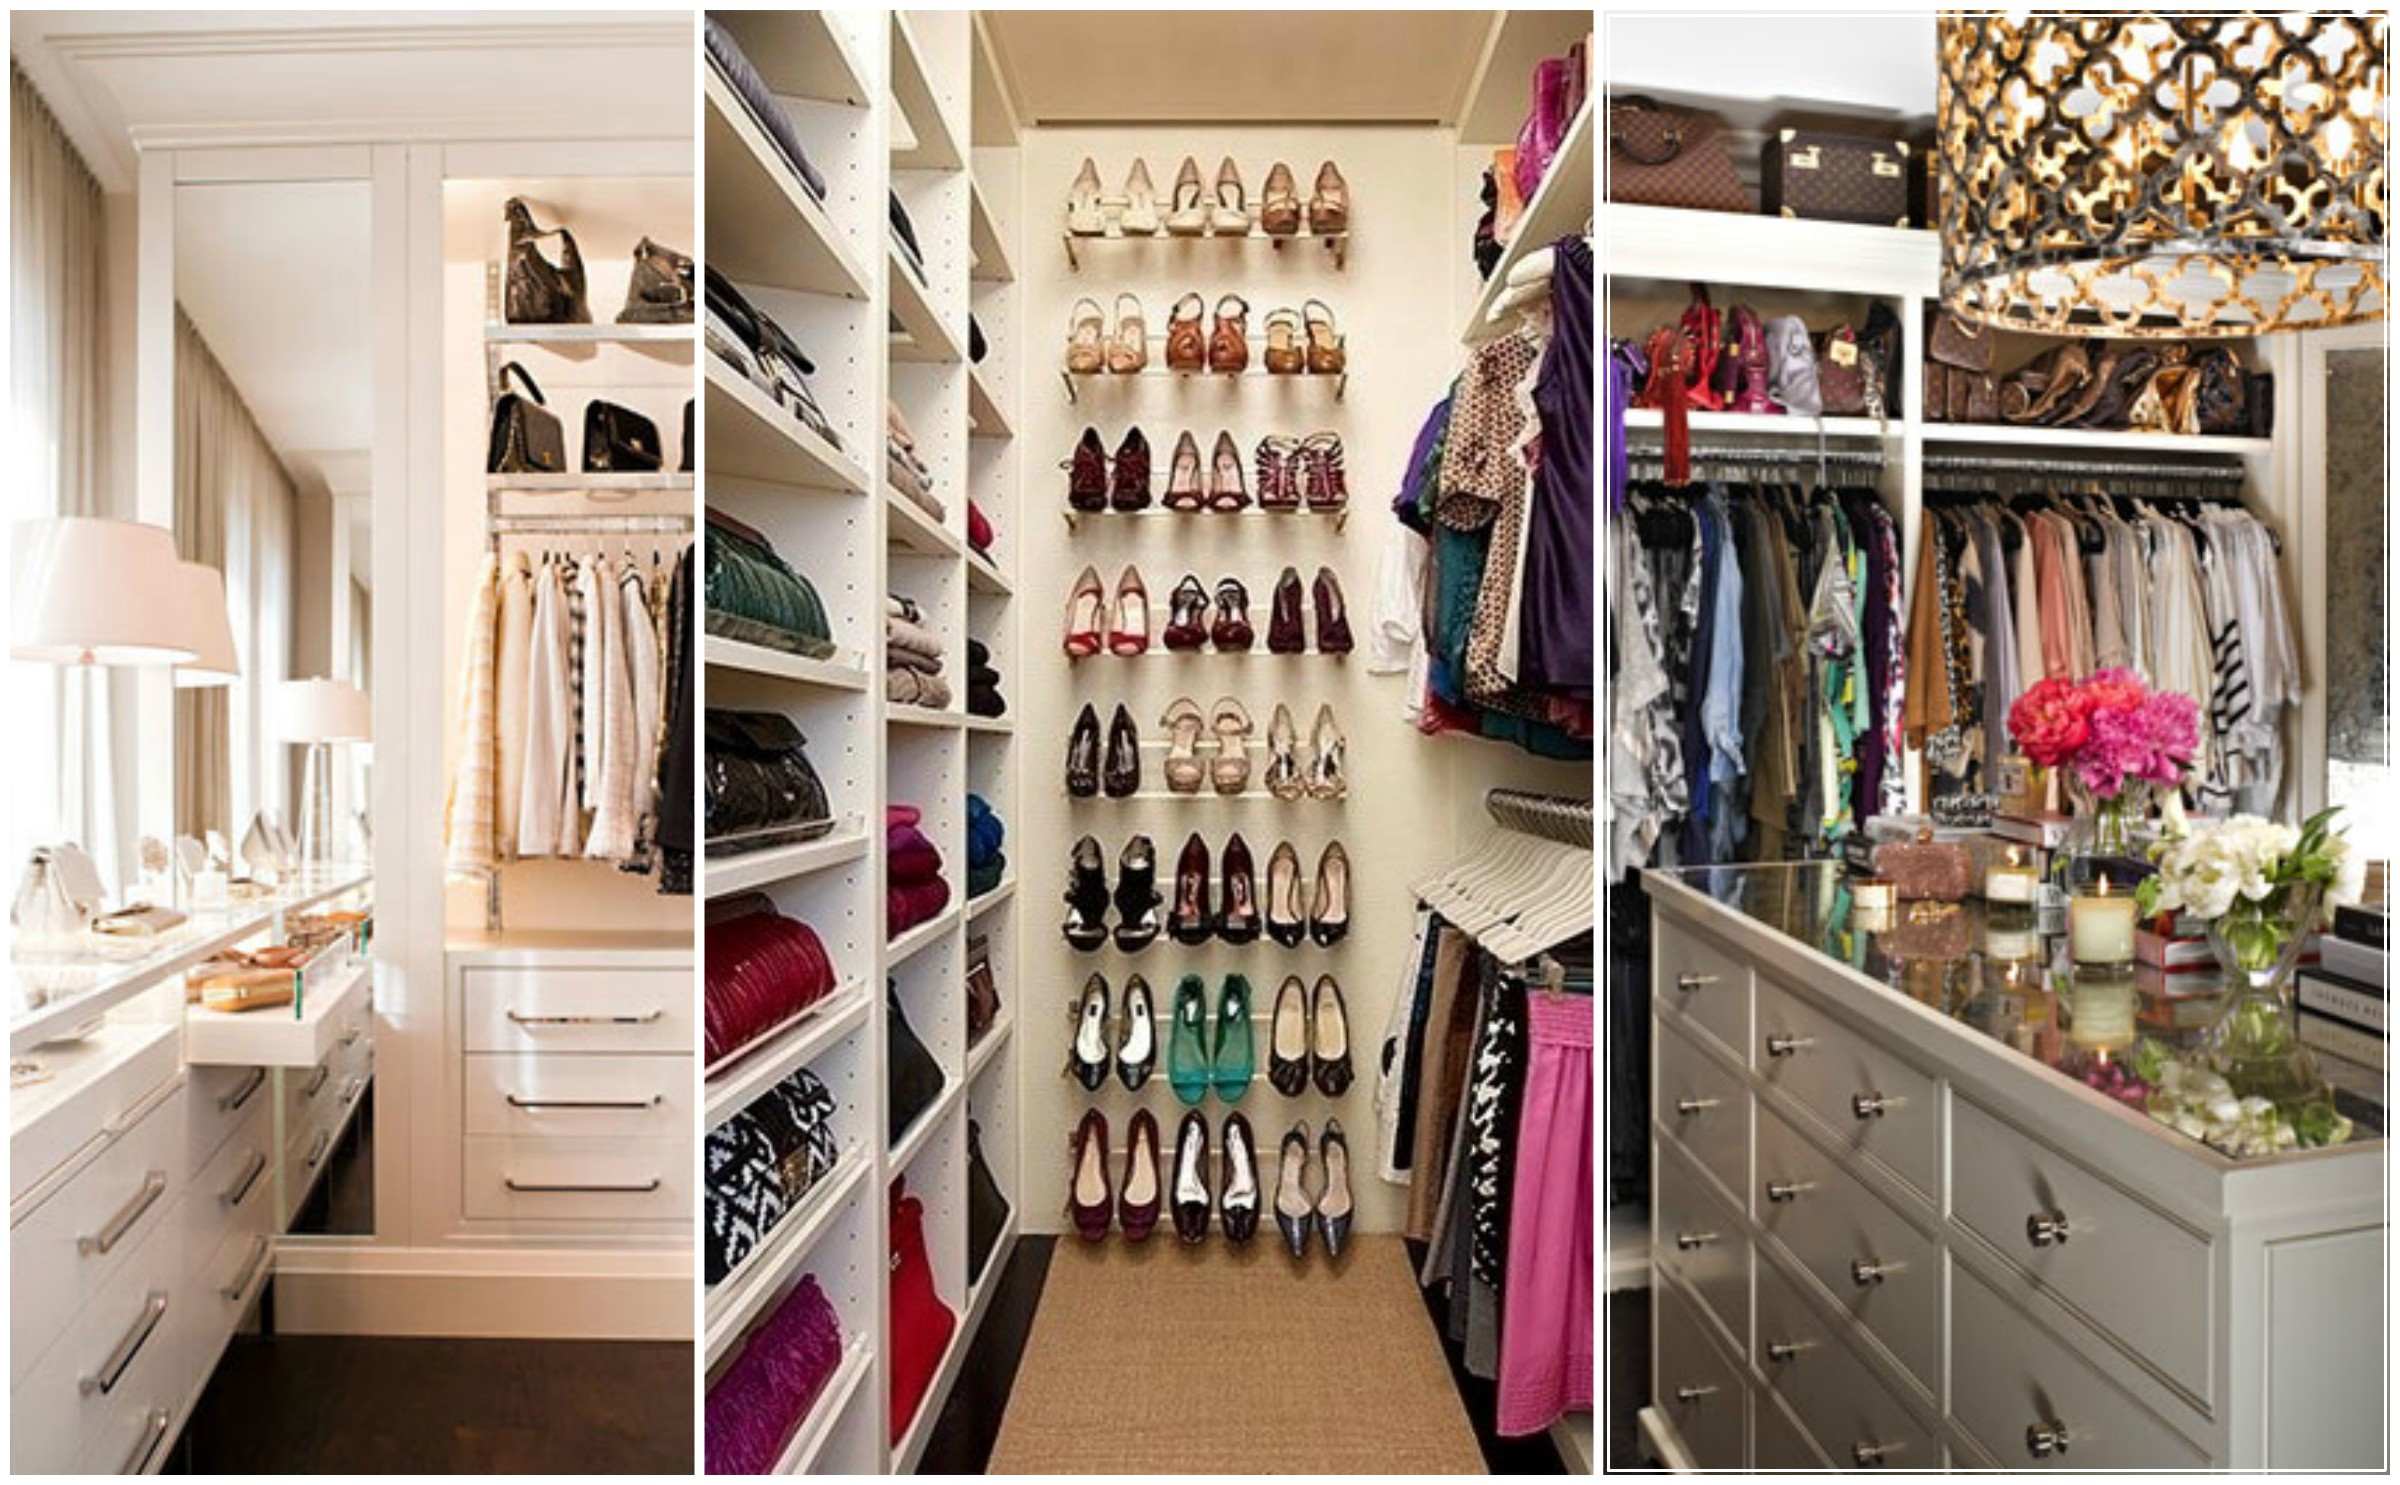 How to organize your closet for summer mystylespot for How do you organize your closet